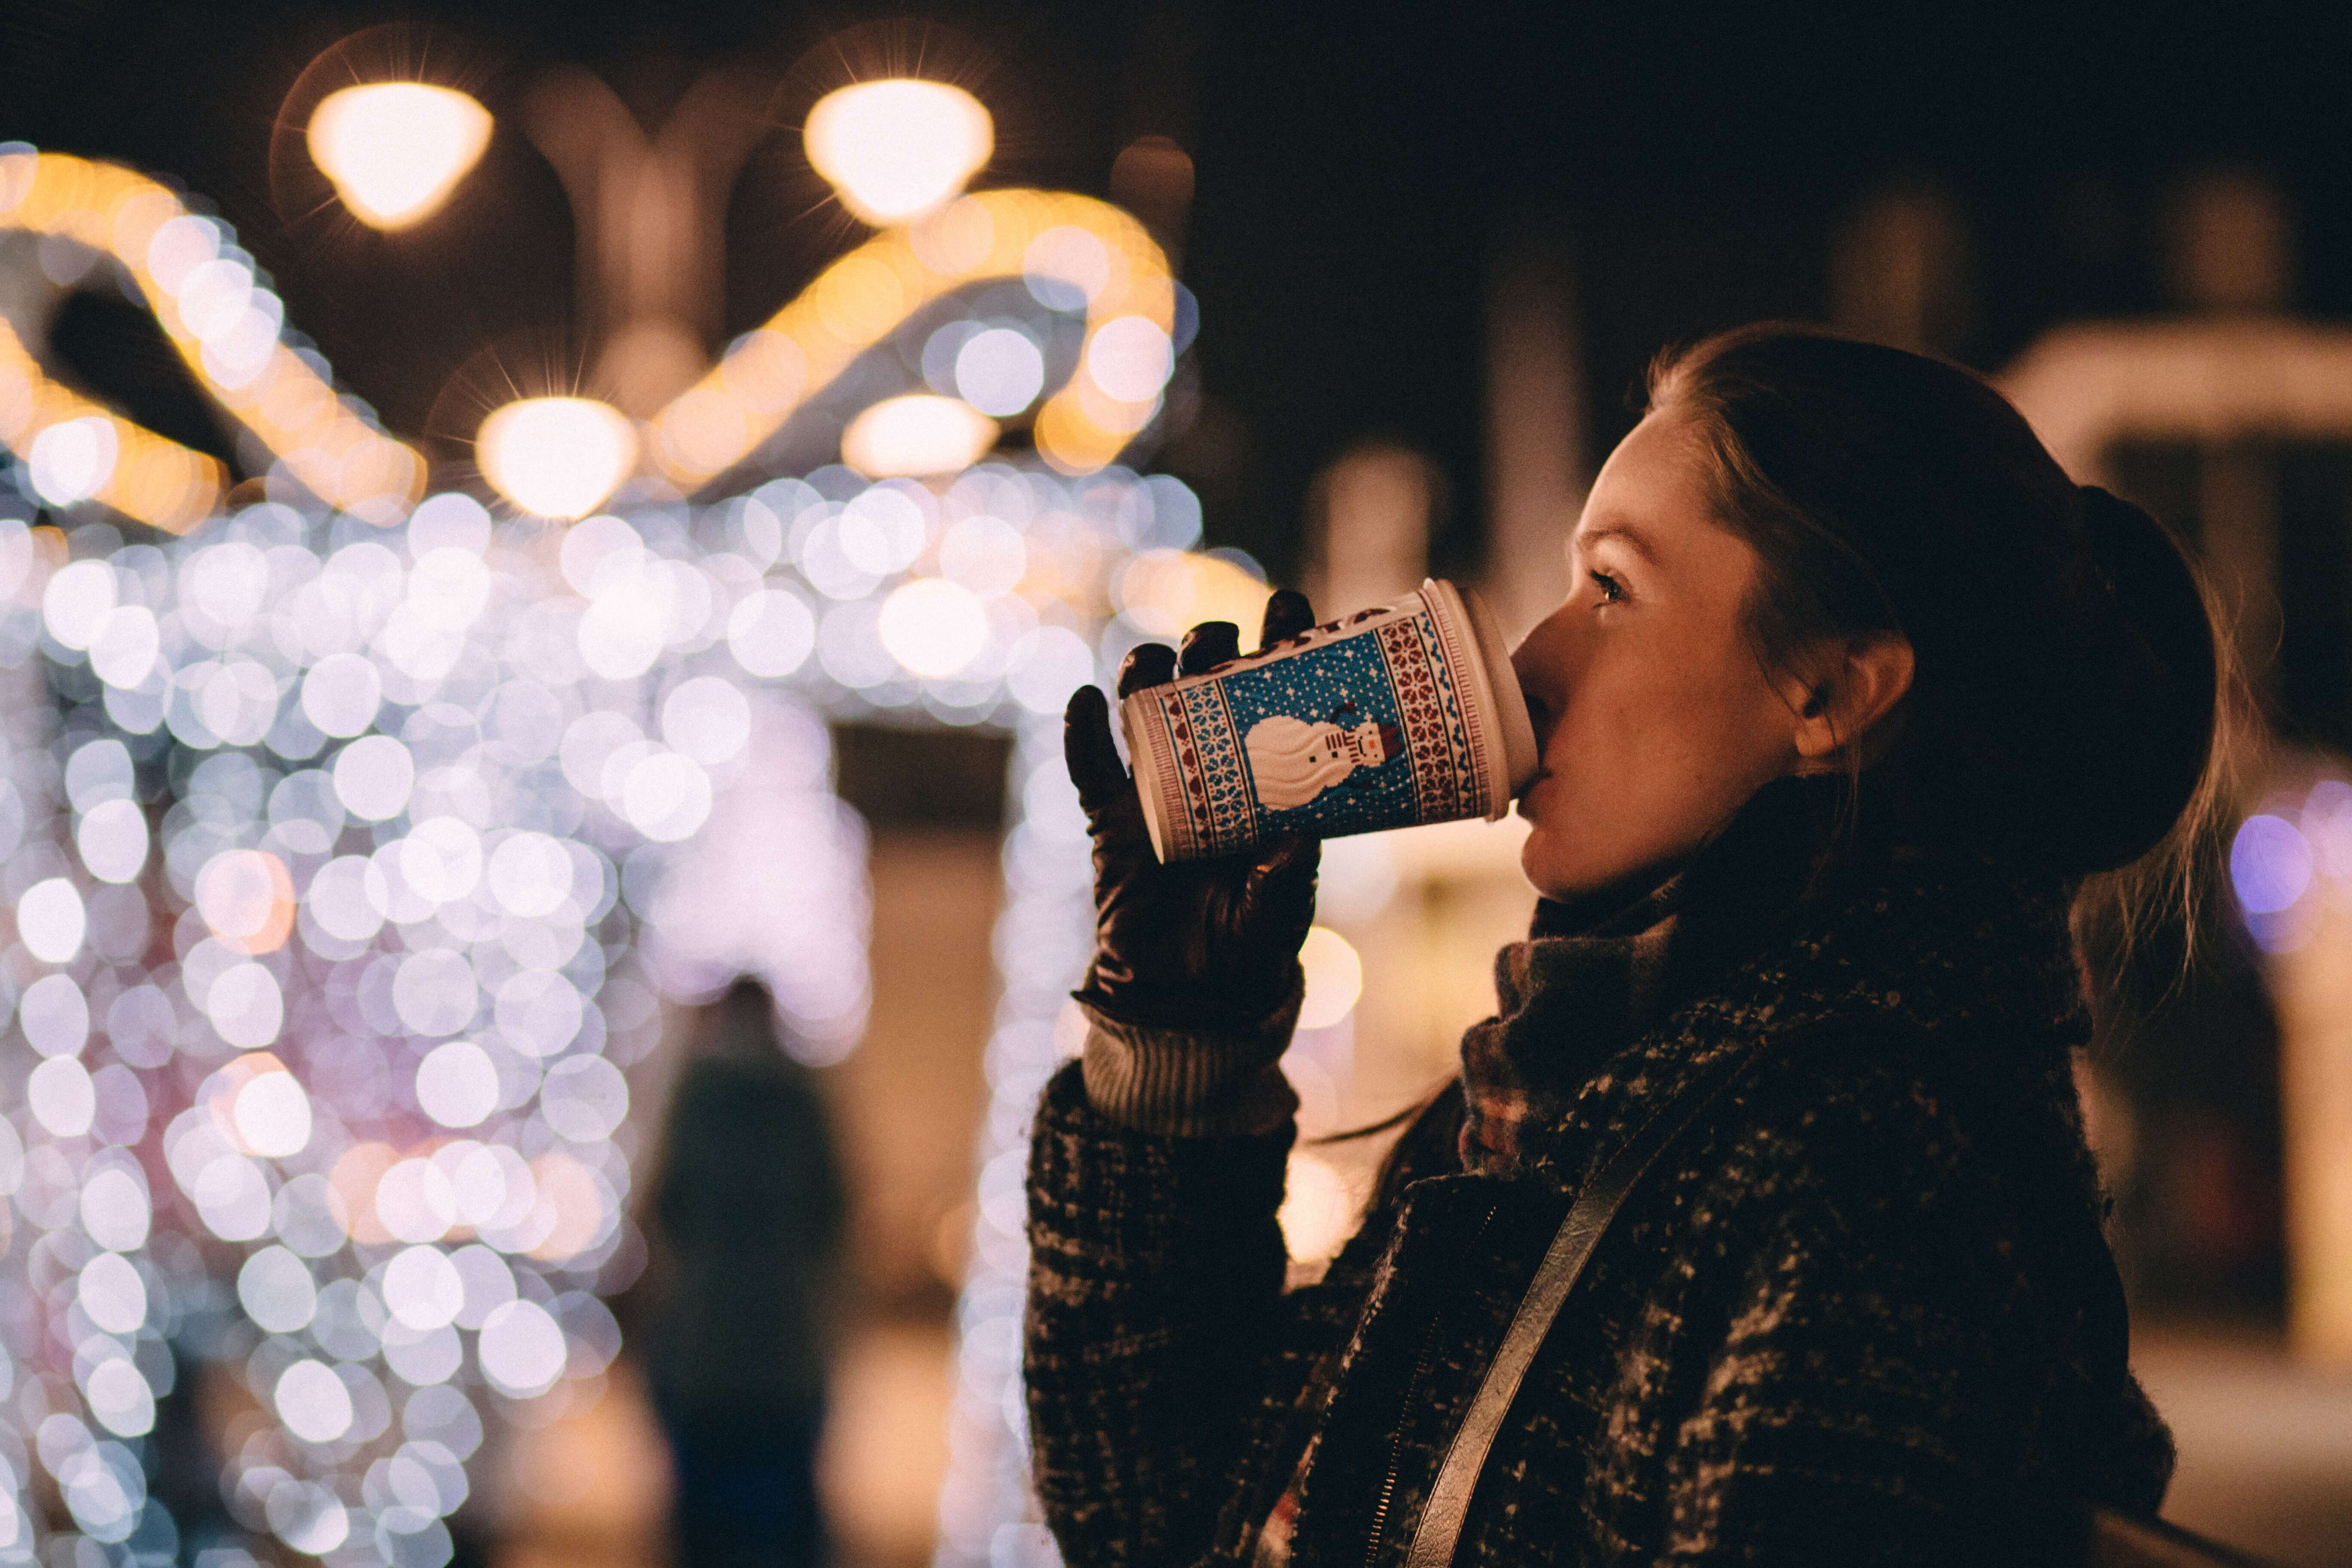 Student outside with hot drink at christmas